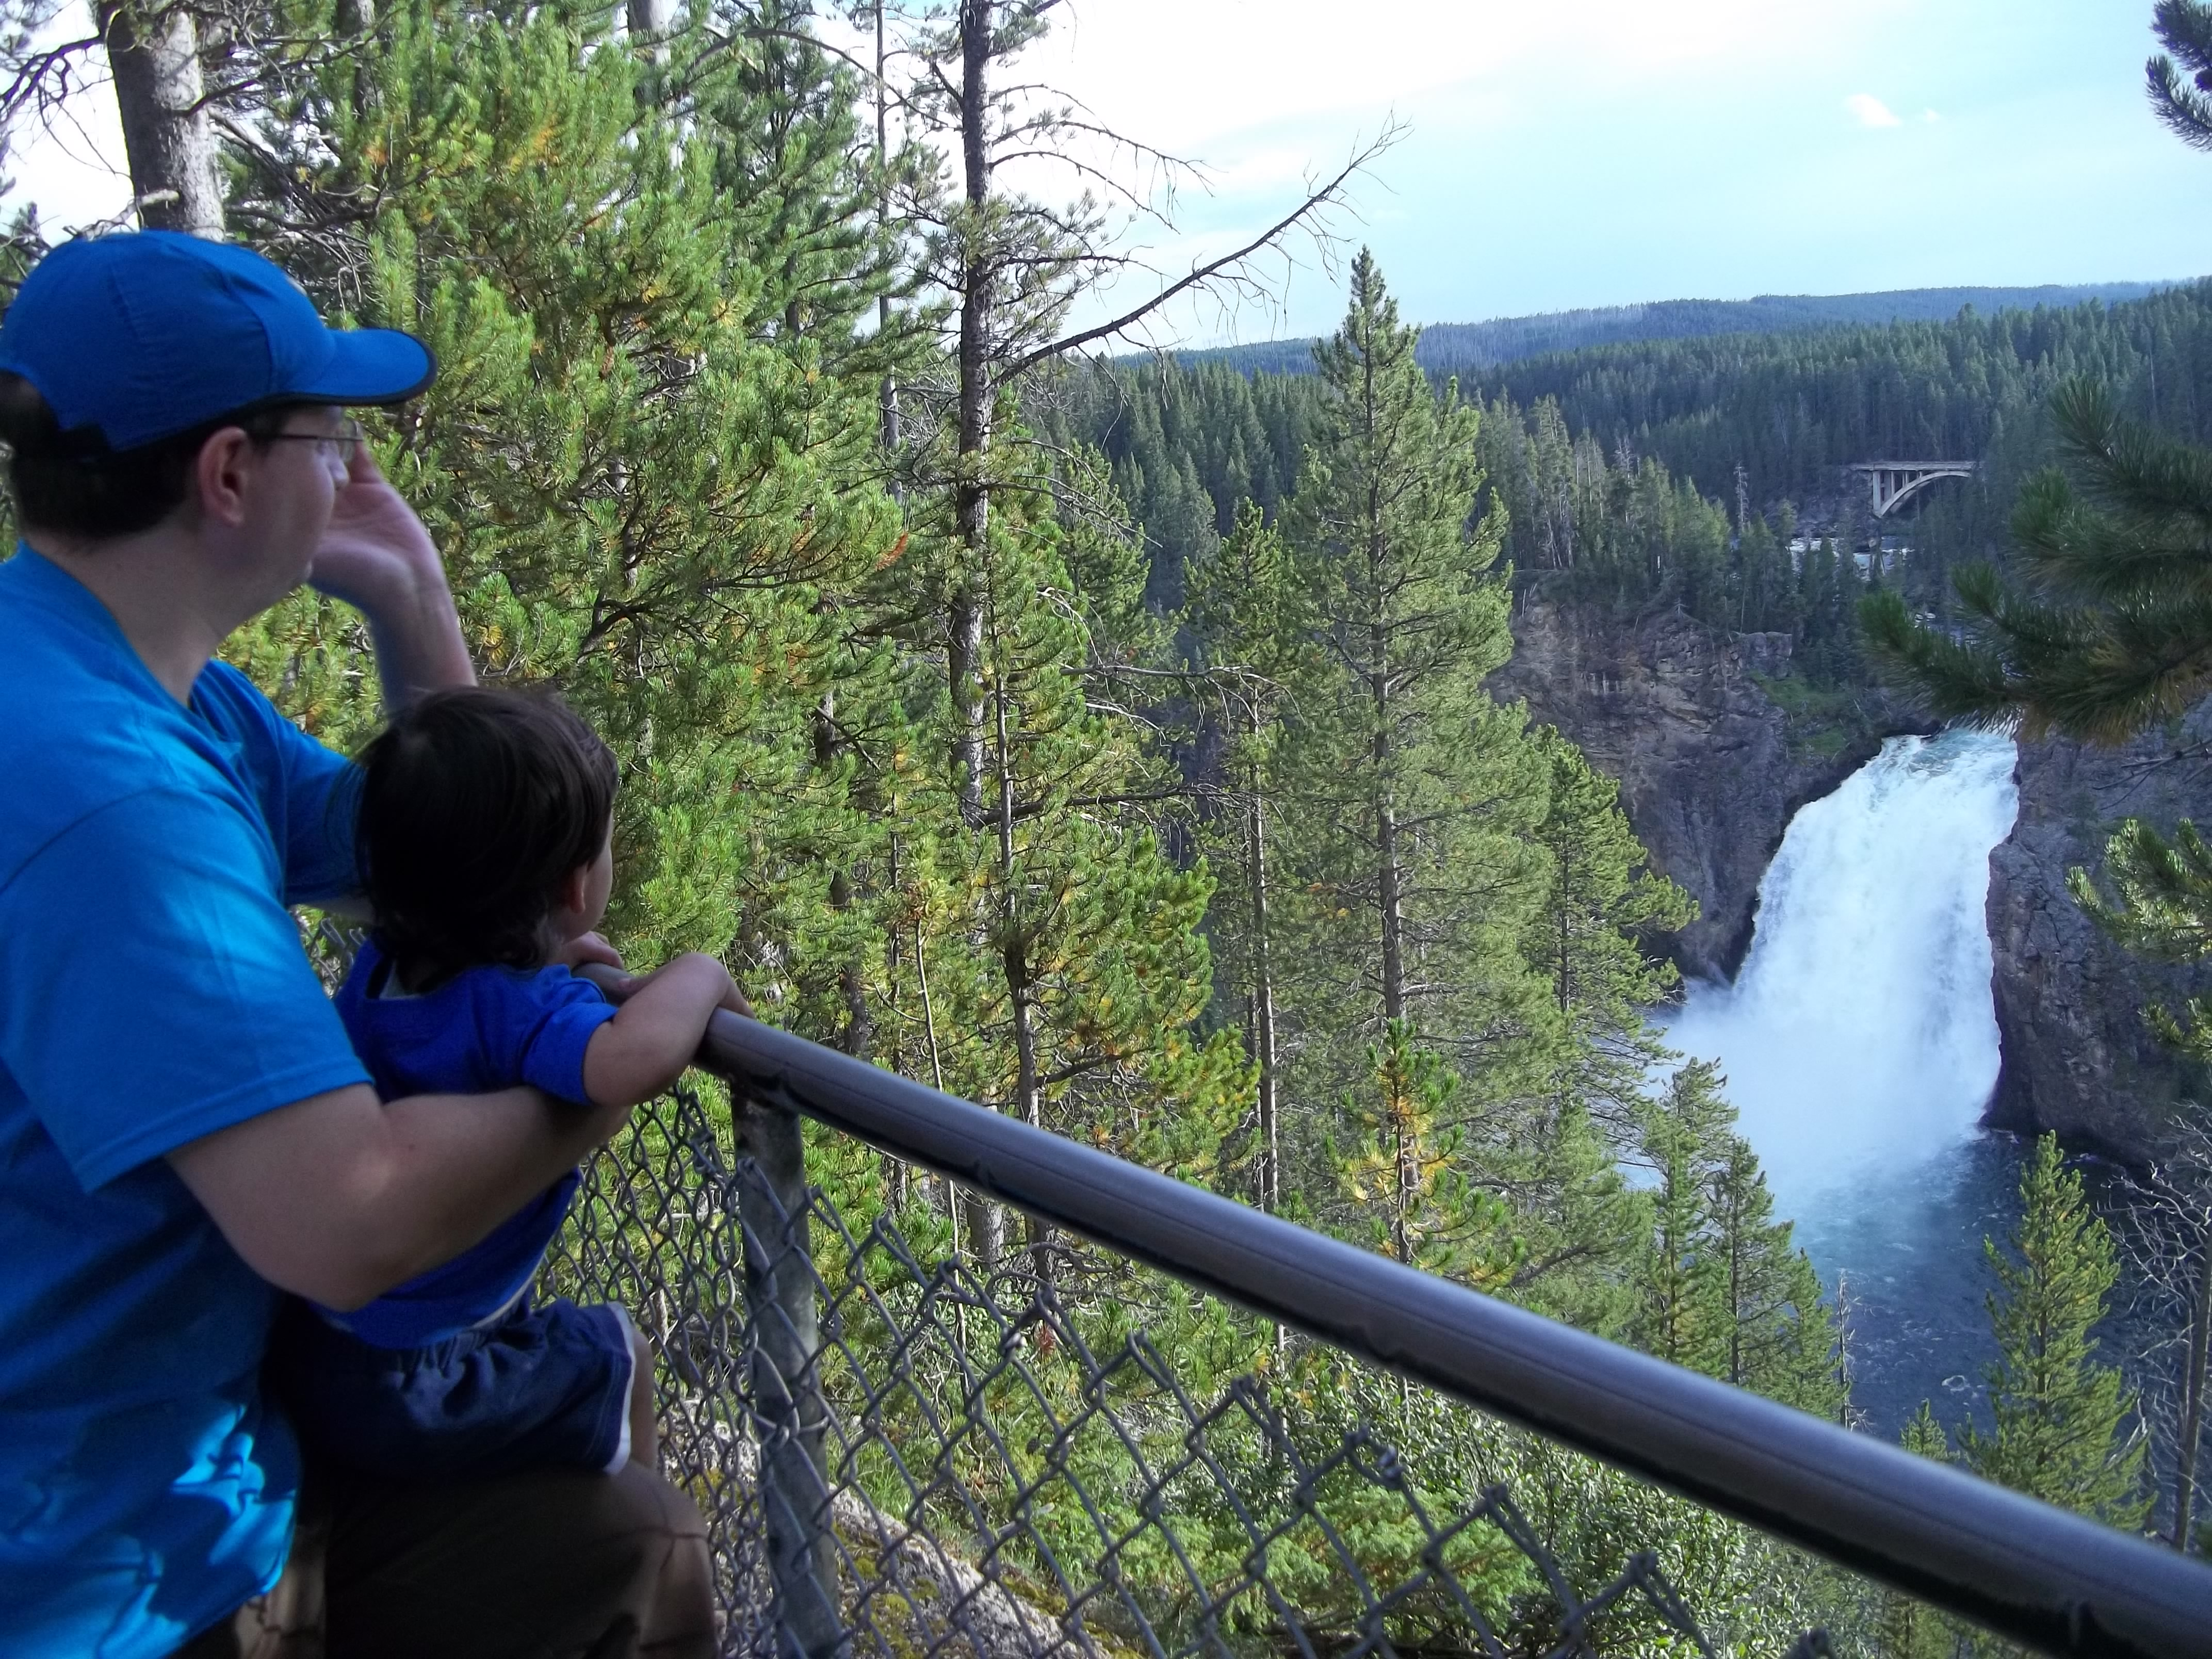 Upper Falls of Yellowstone River in Yellowstone National Park